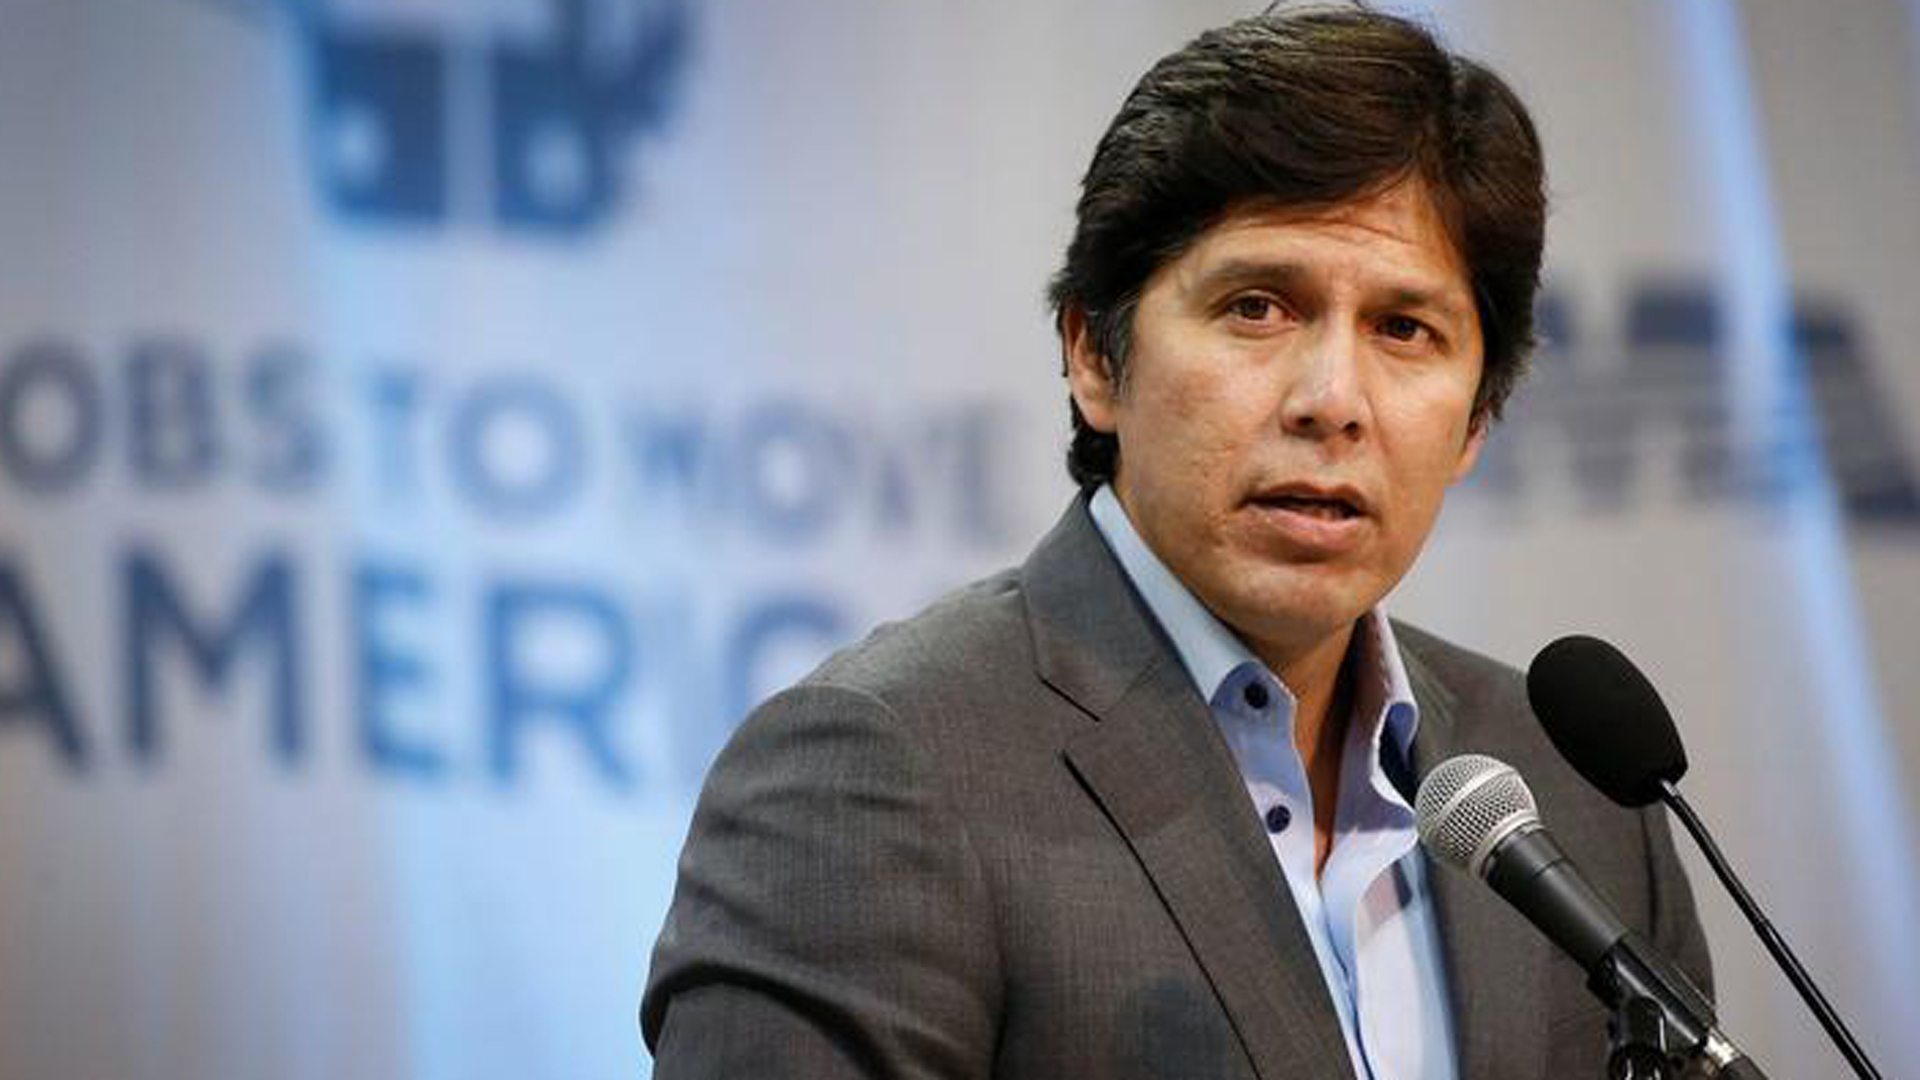 """""""Last week, California beat President Trump in a federal court battle over the future of the DACA program, and the Dreamers who continue to live here under its protection,"""" De León said in a statement. """"Now, he is lashing out."""" (Credit: Al Seib / Los Angeles Times)"""